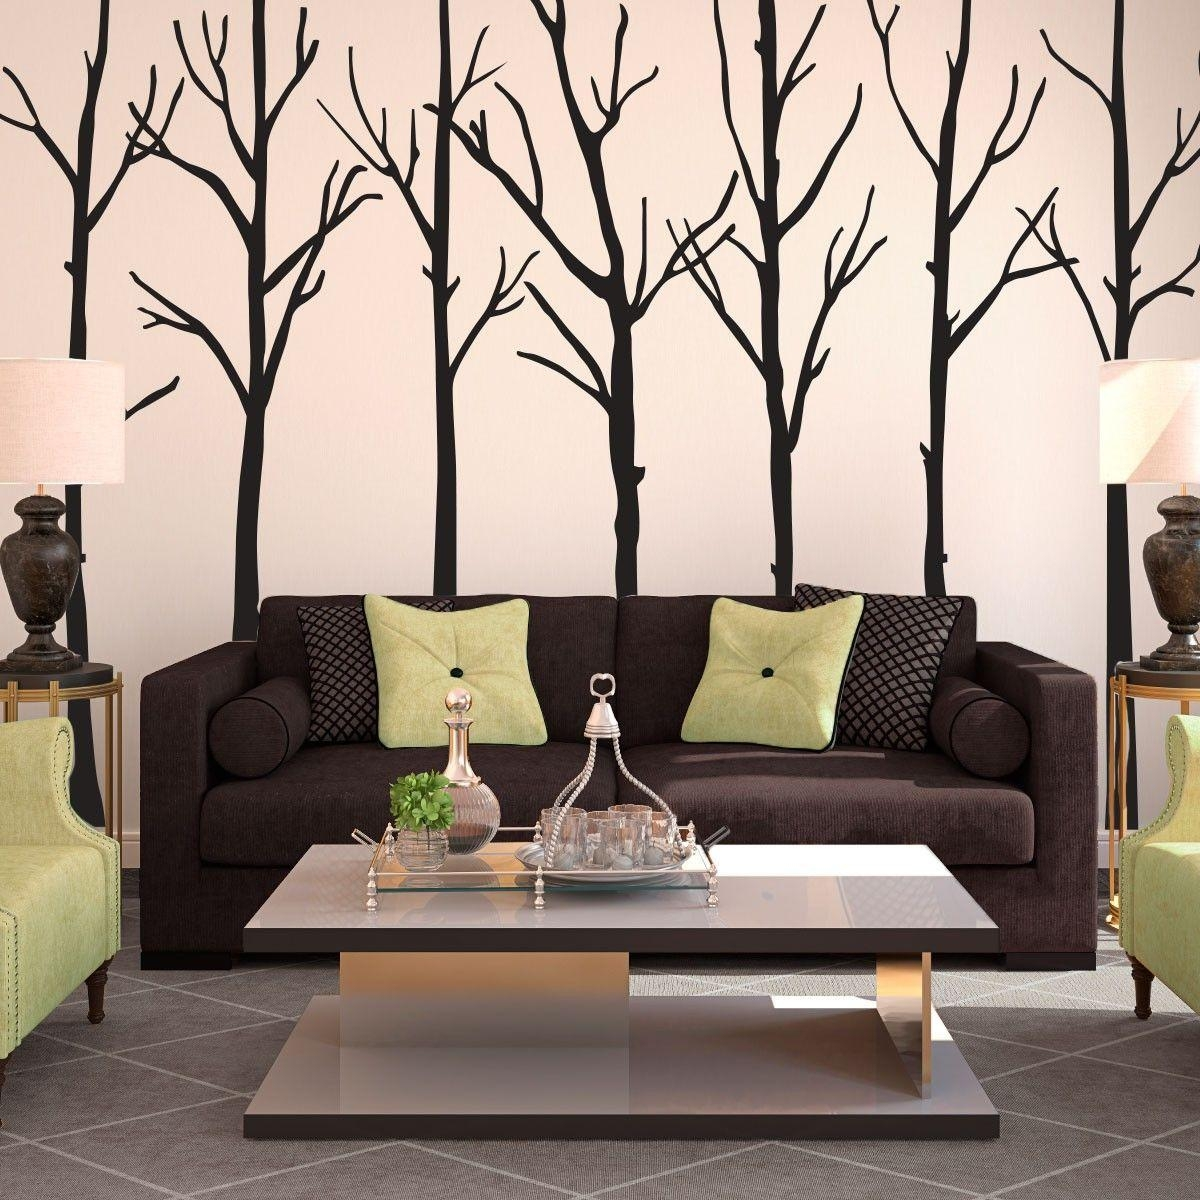 Best Living Room Wall Art Decoration – House Design With Wall Arts For Living Room (View 2 of 20)